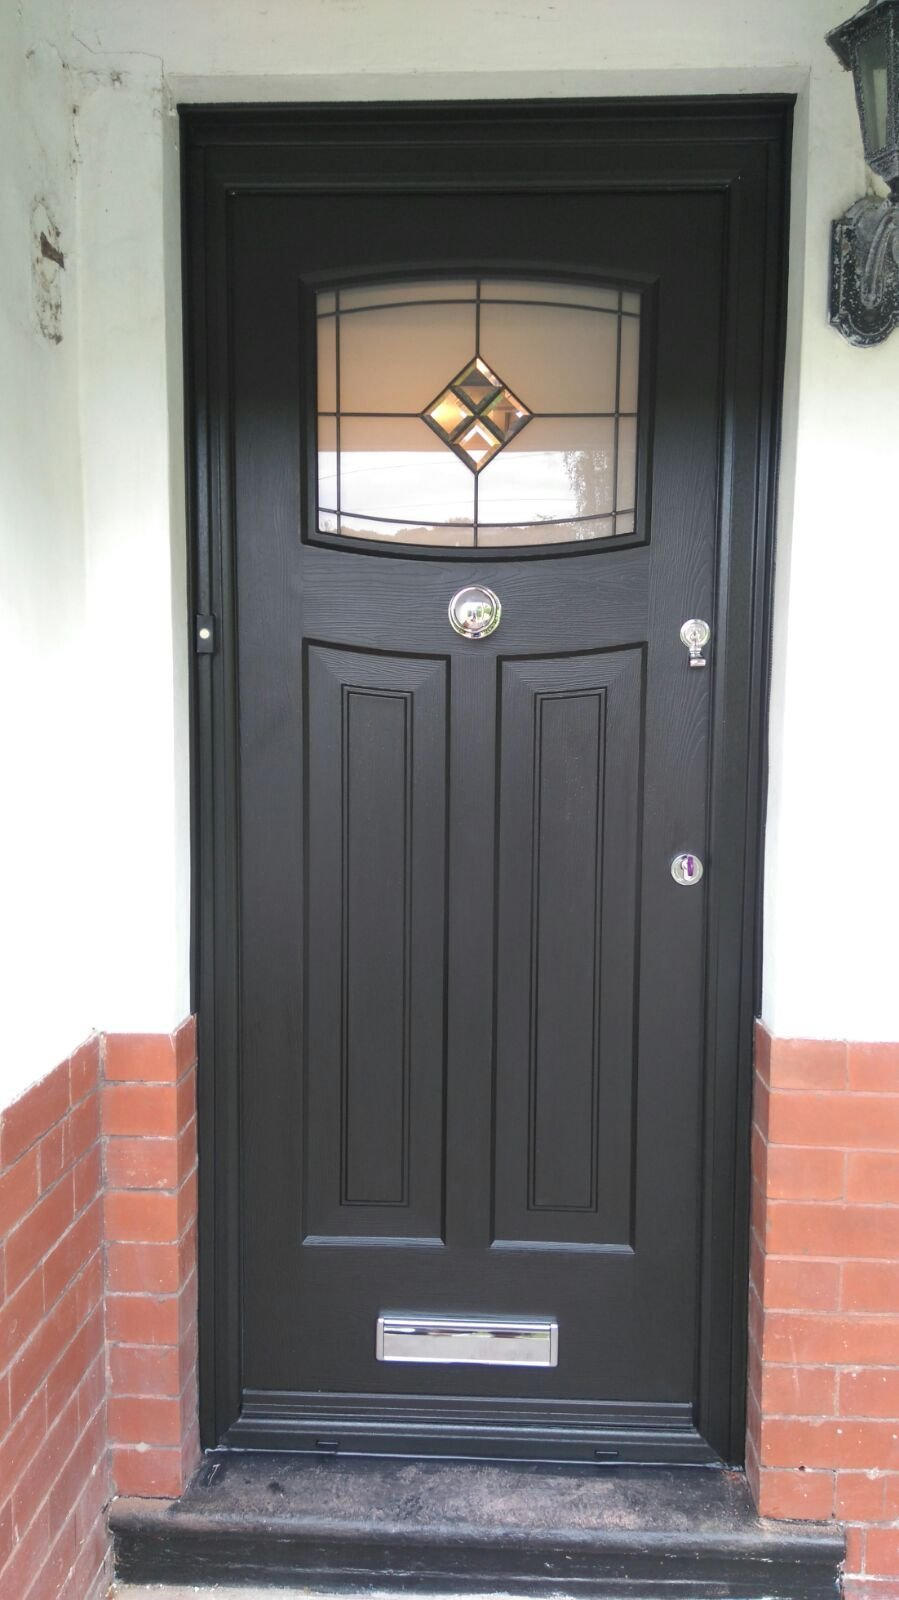 Slide Title & CDS - The Leading Rockdoor Specialists